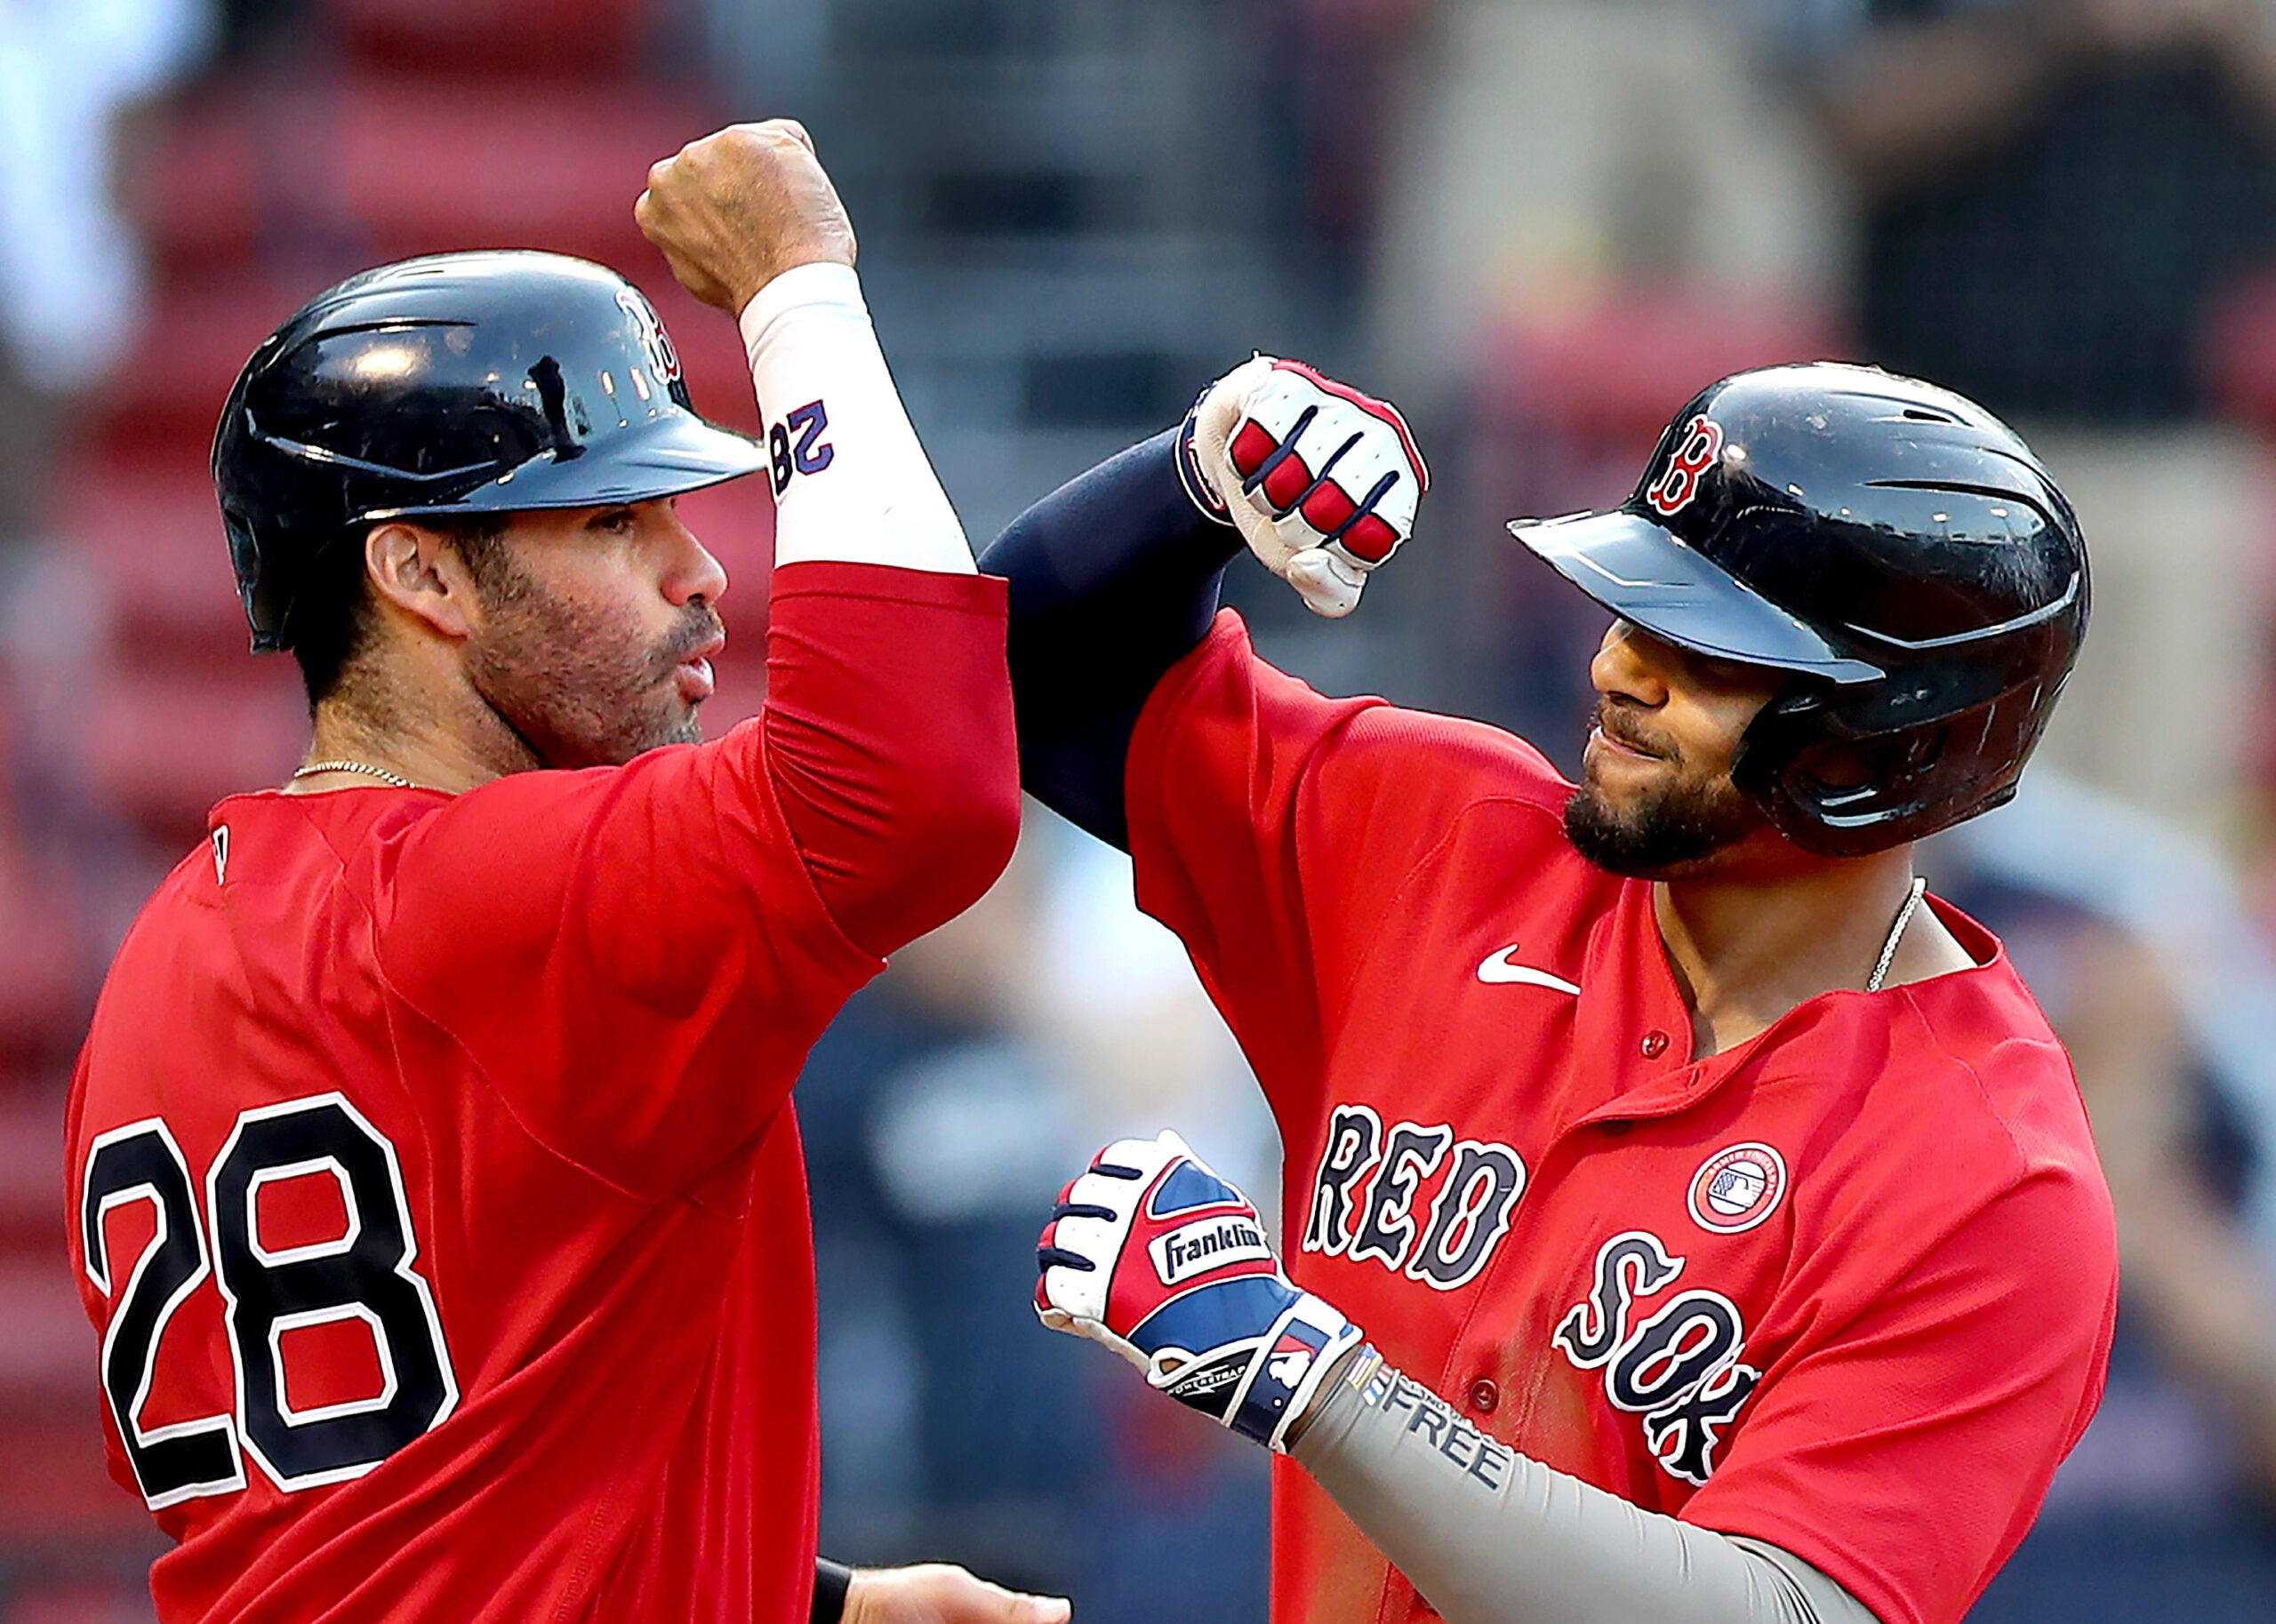 J.D. Martinez and Xander Bogaerts are two of the top 15 offensive producers in baseball this season, as is teammate Rafael Devers.